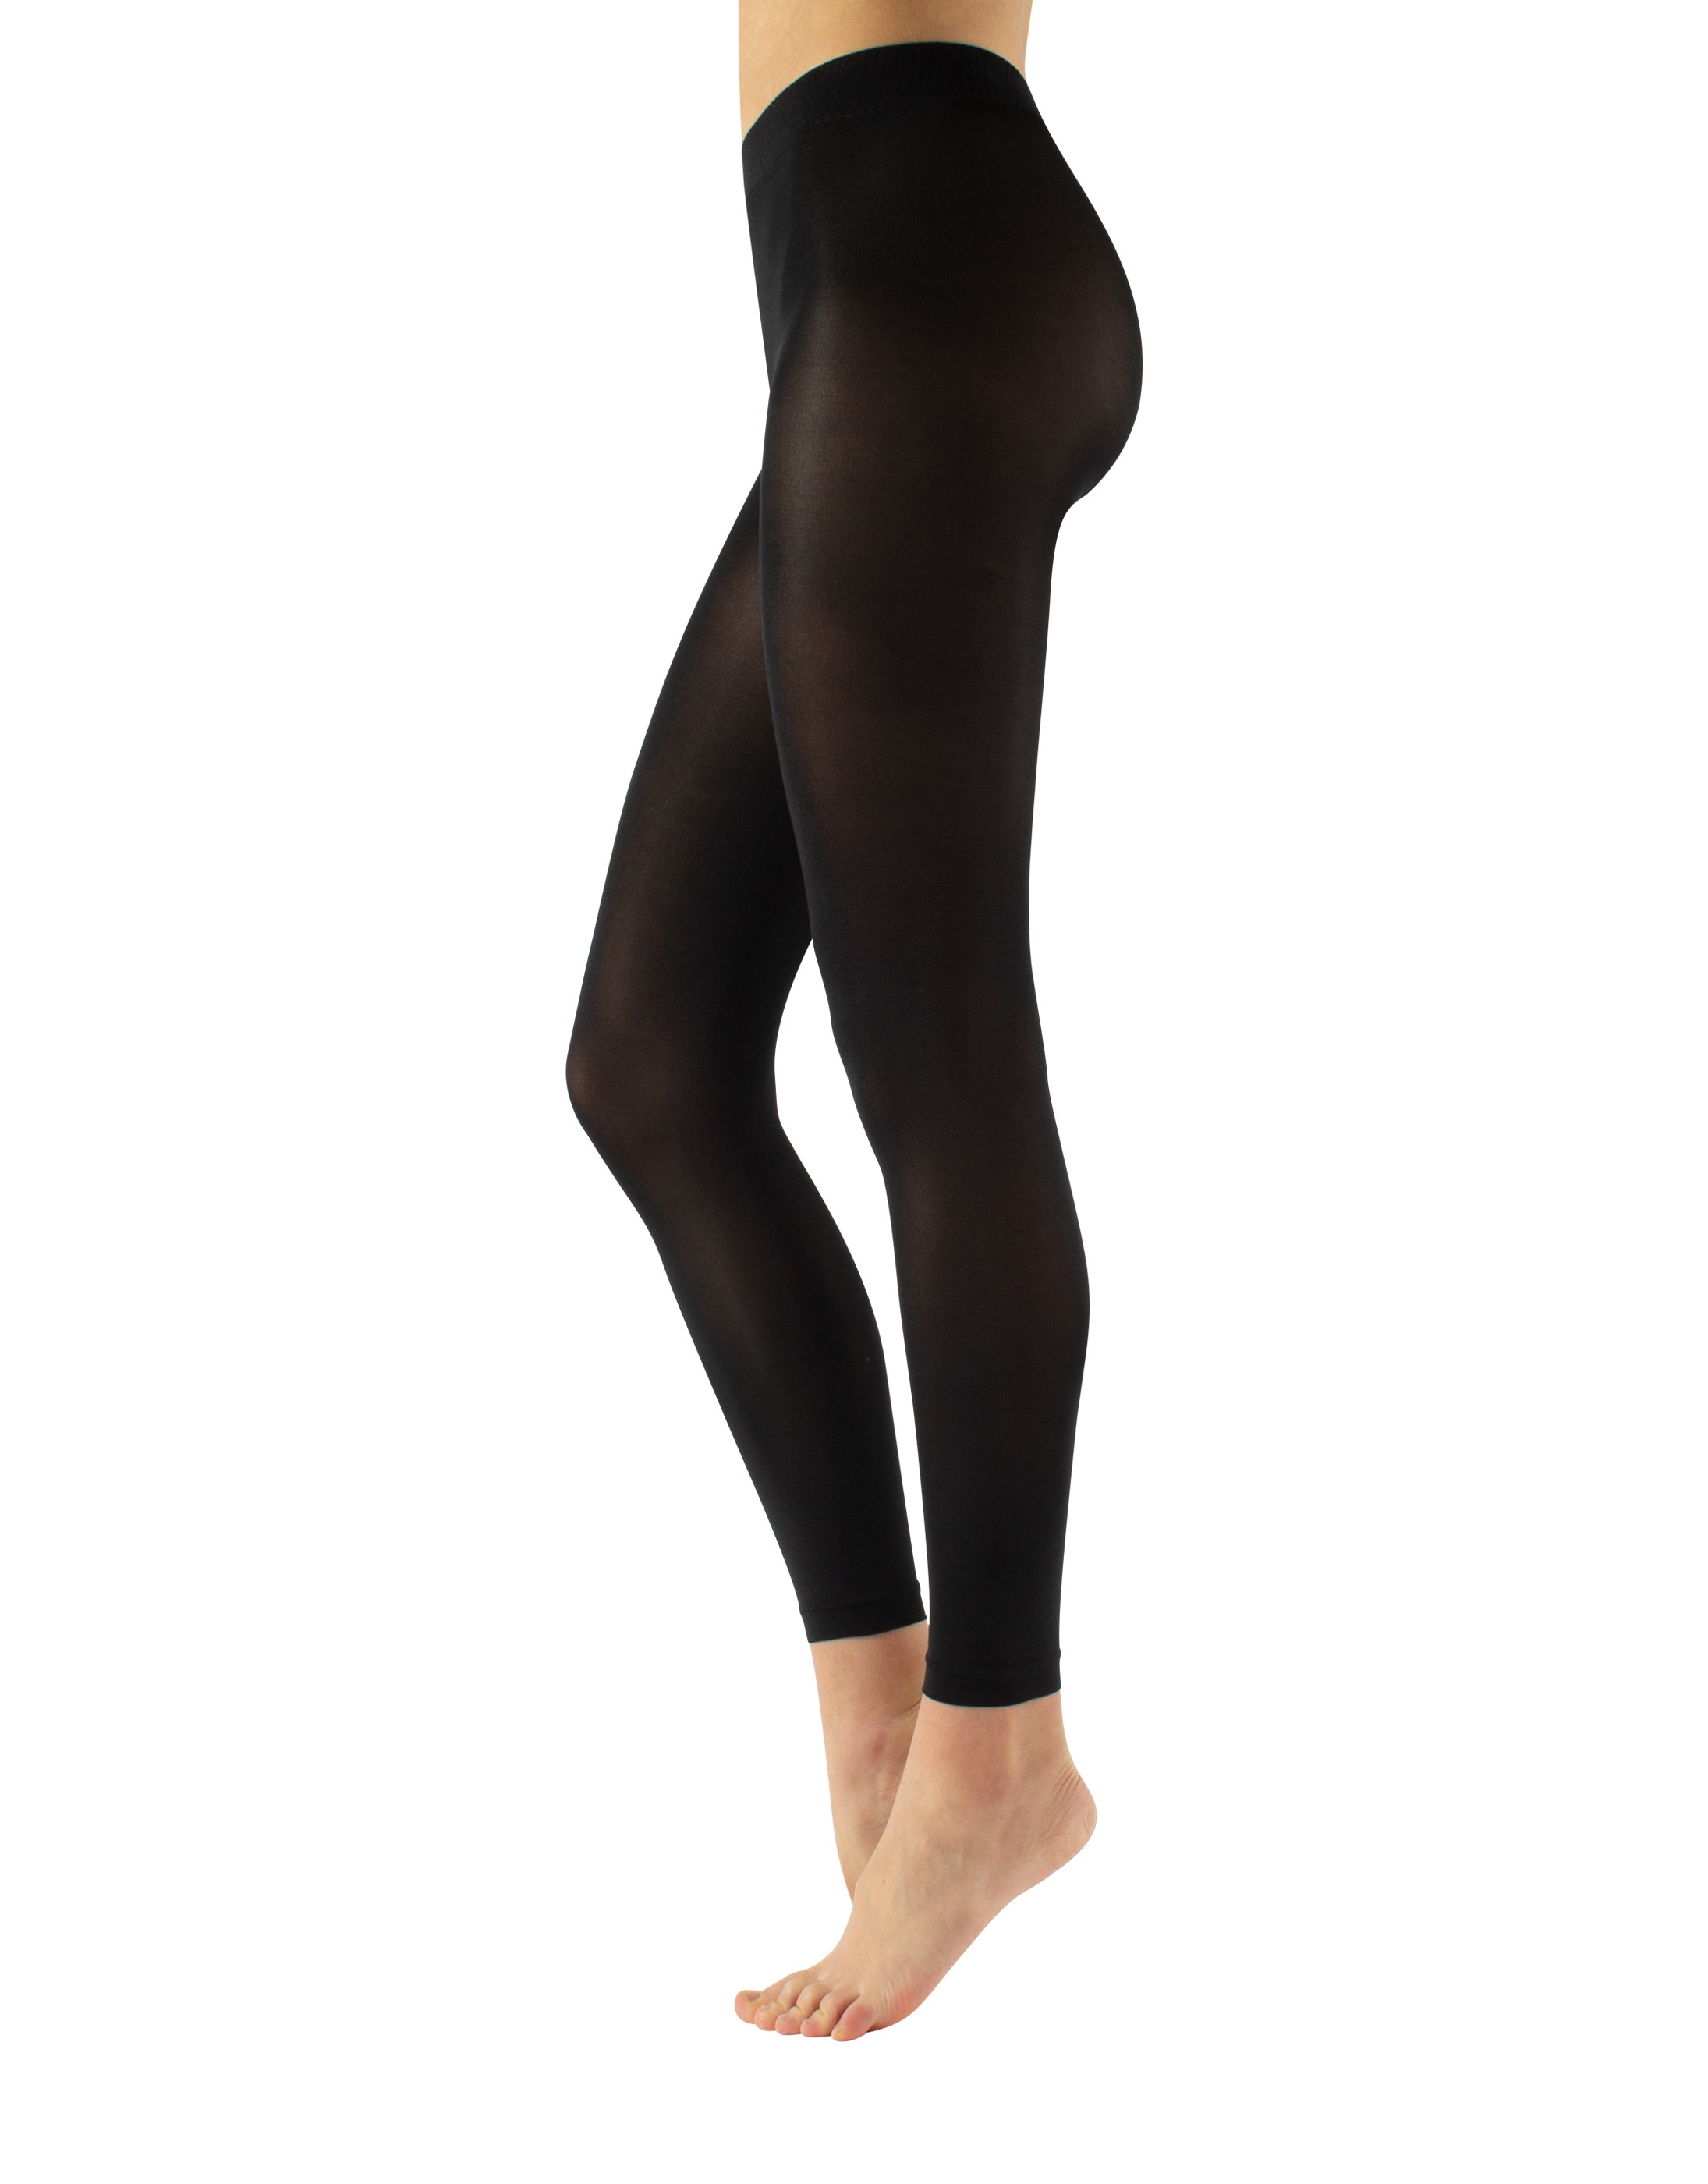 MICROFIBER DANCE LEGGINGS - 60 DEN